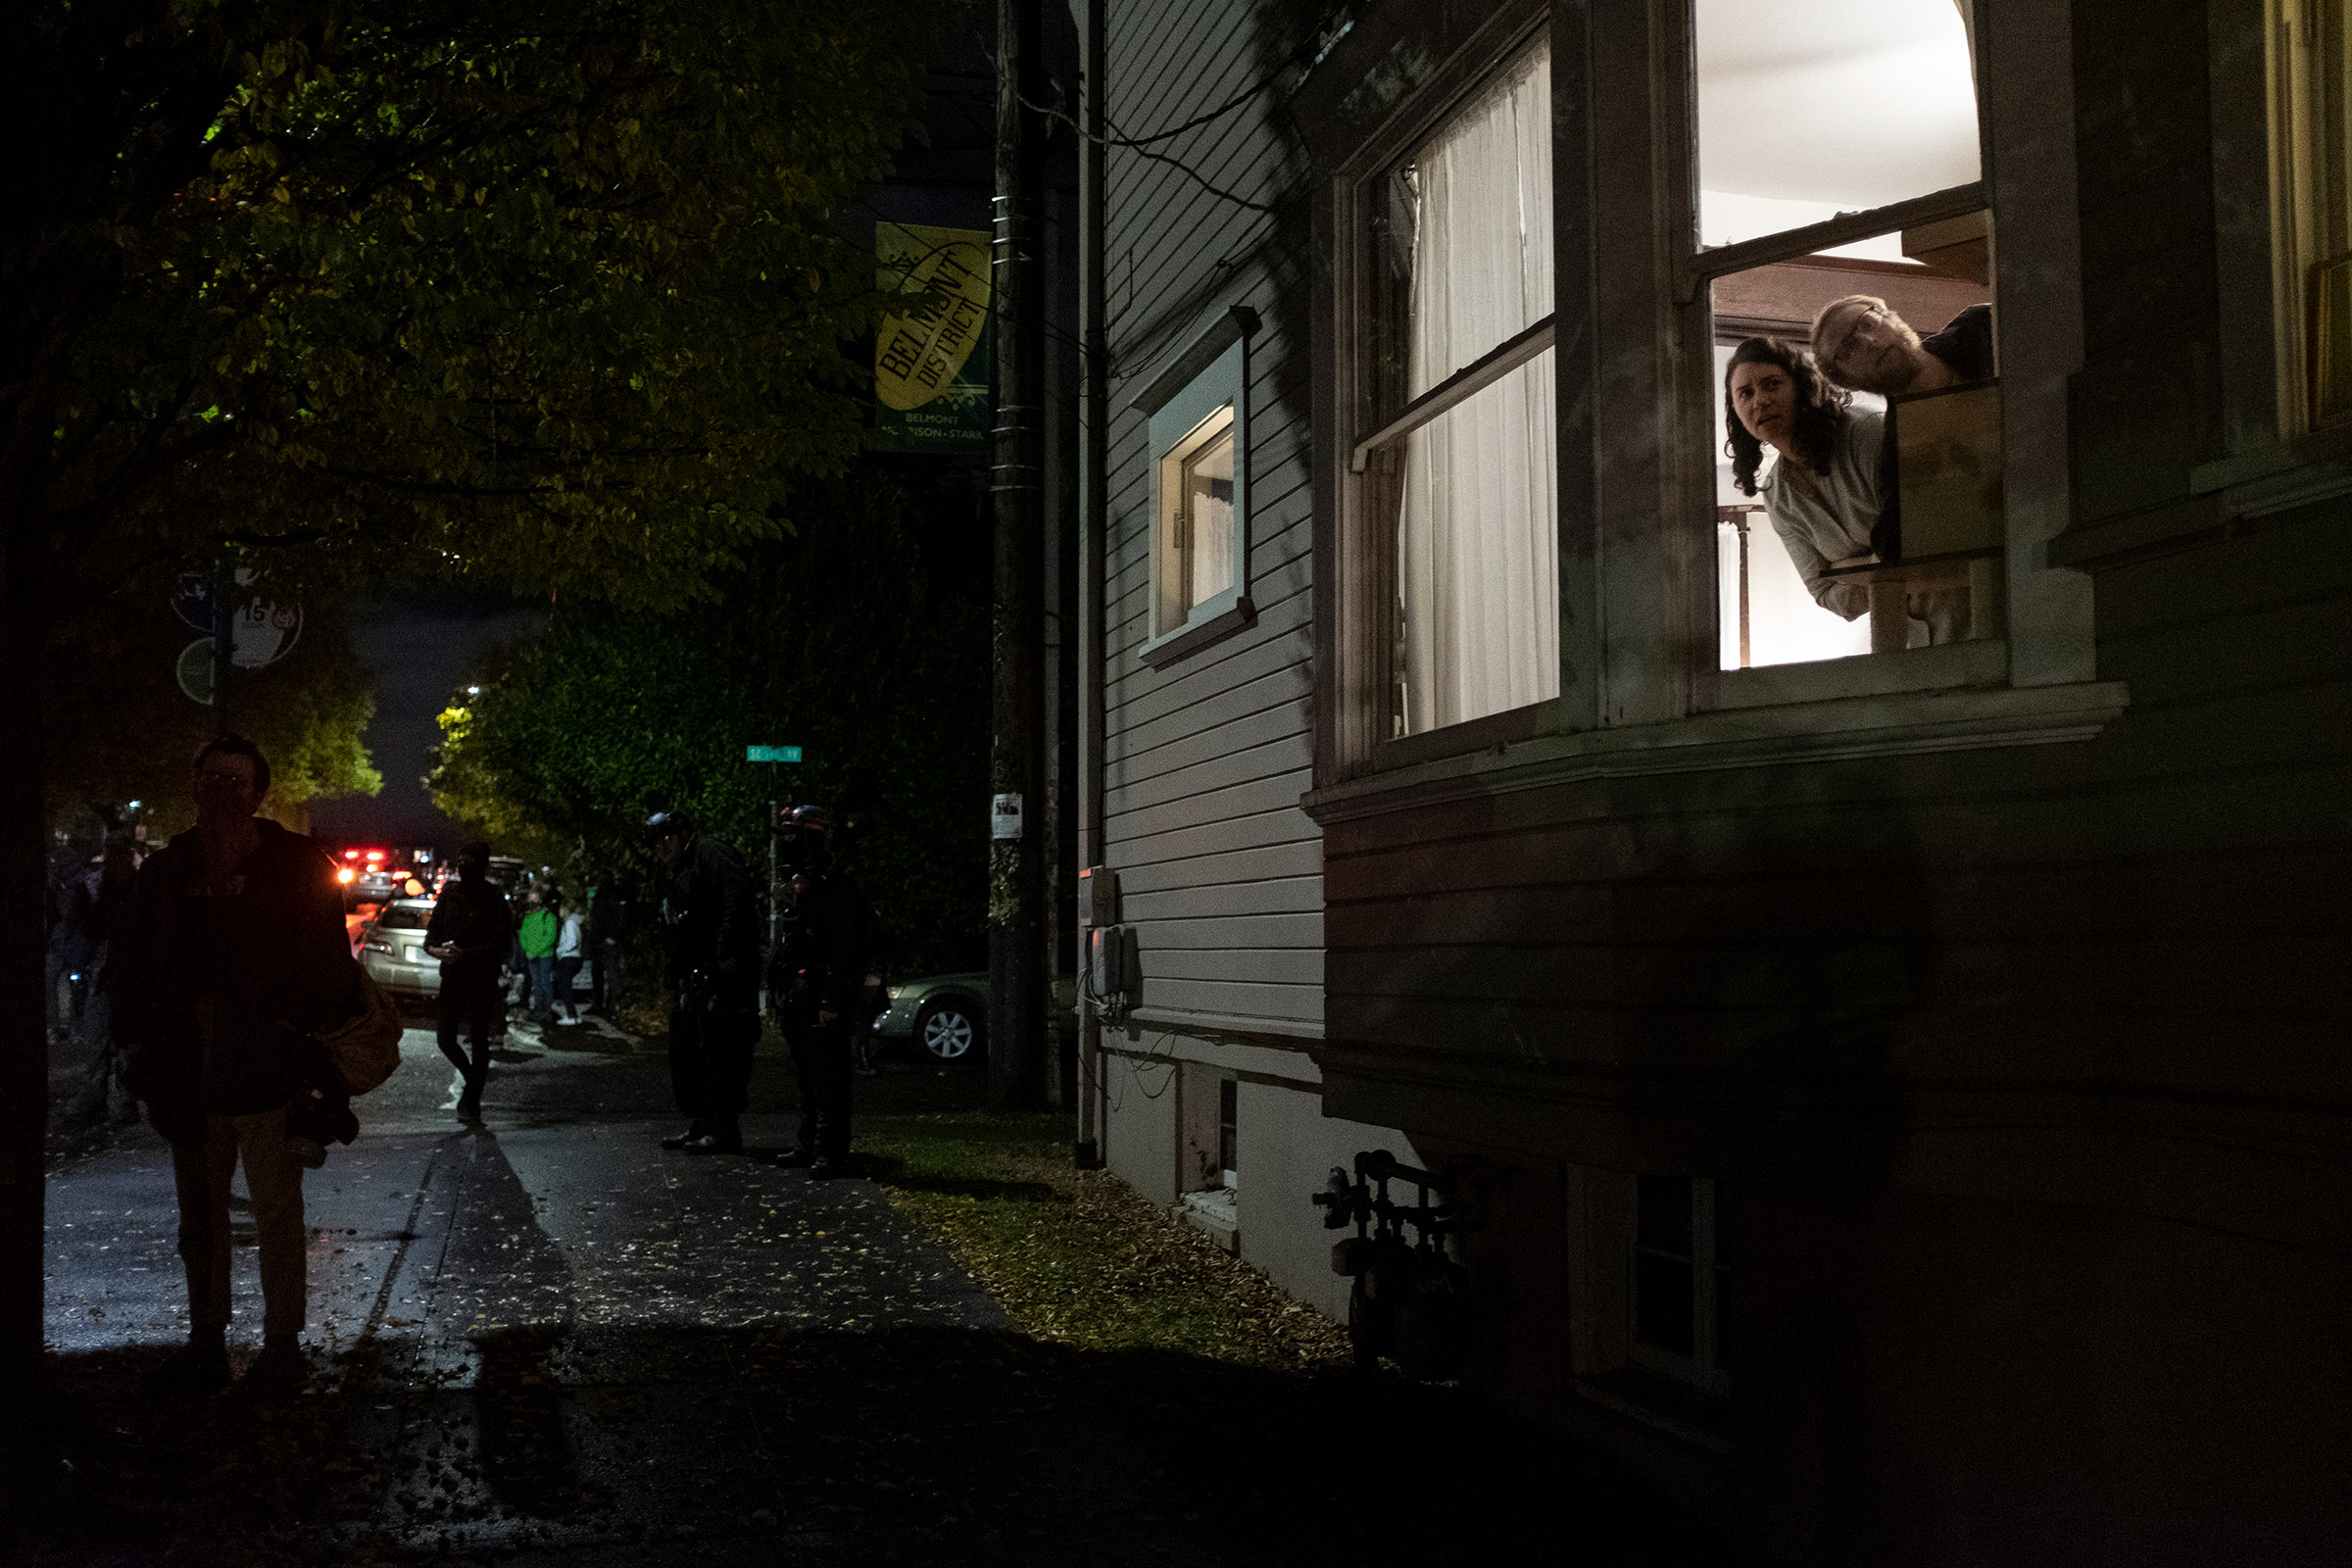 People watch Black Lives Matter protesters march through a residential area in Portland, Ore., on Election Day.